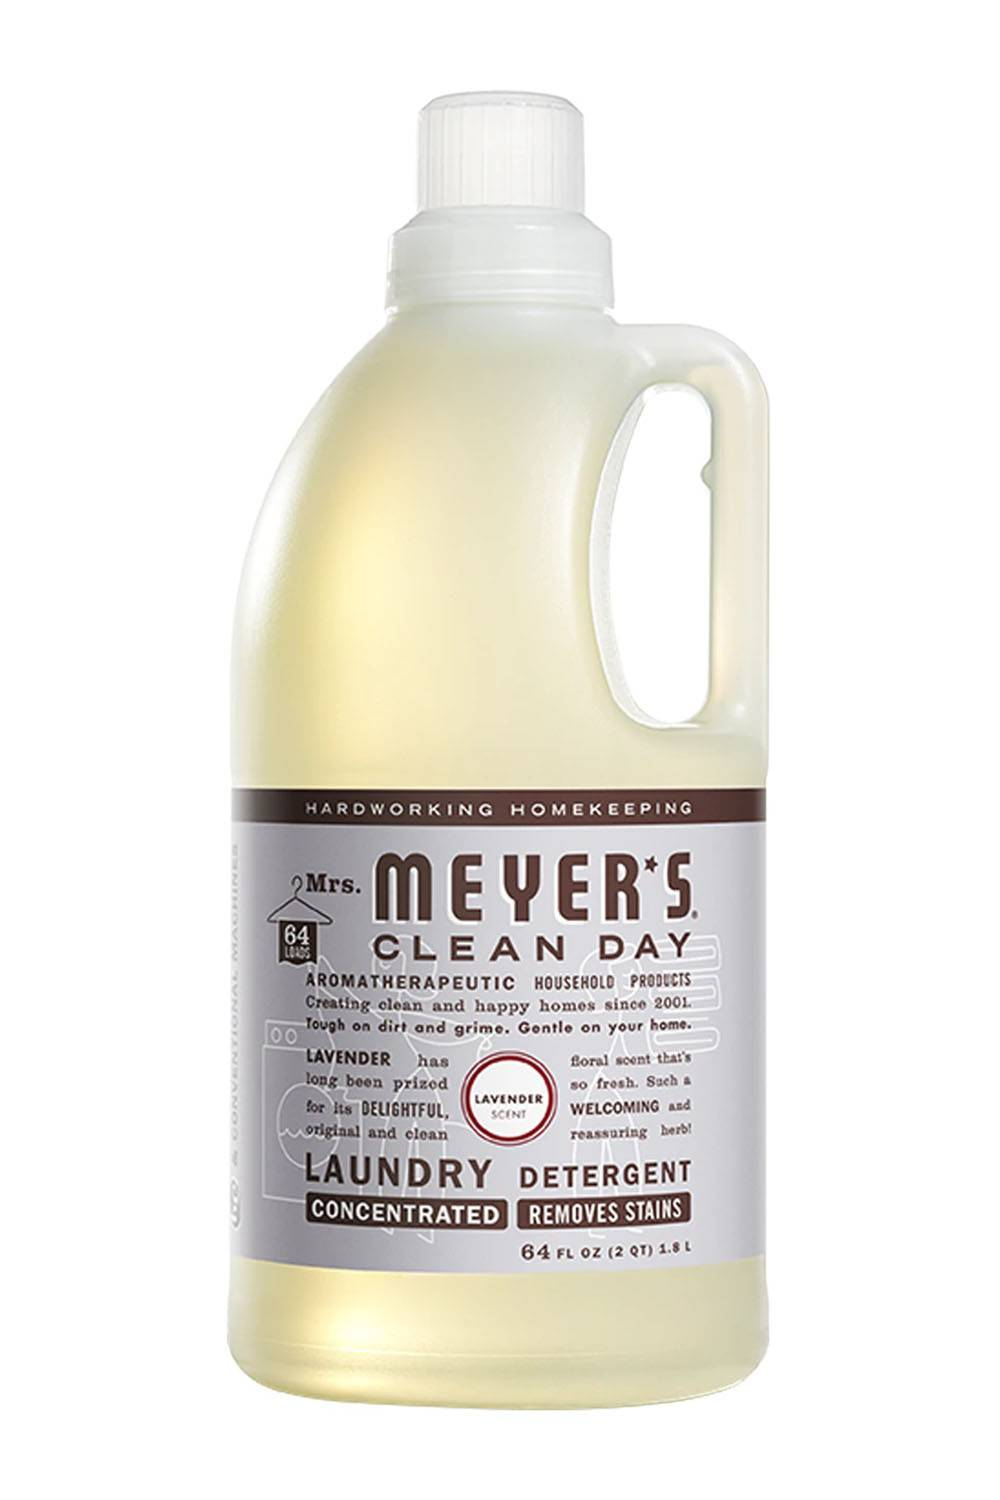 mrs meyers sustainable laundry detergent